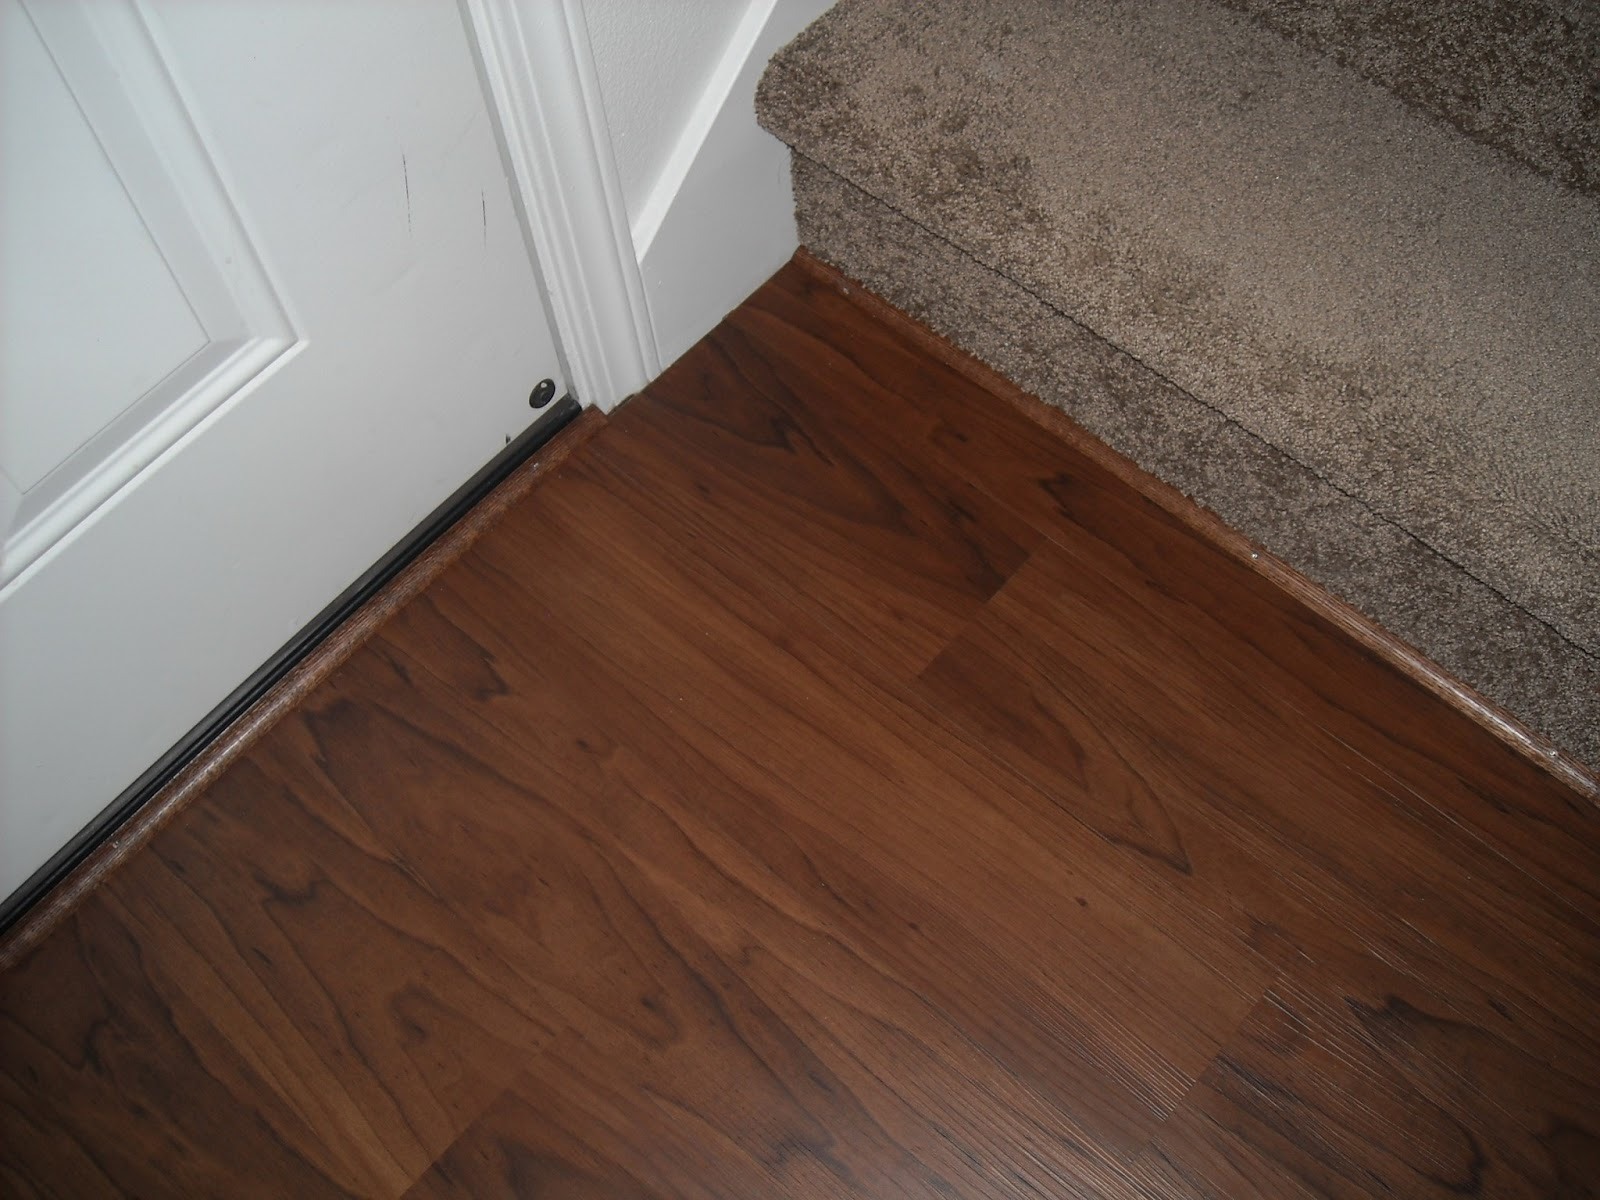 Allure Trafficmaster Floor Transition Strips   Finishing My Allure Floor